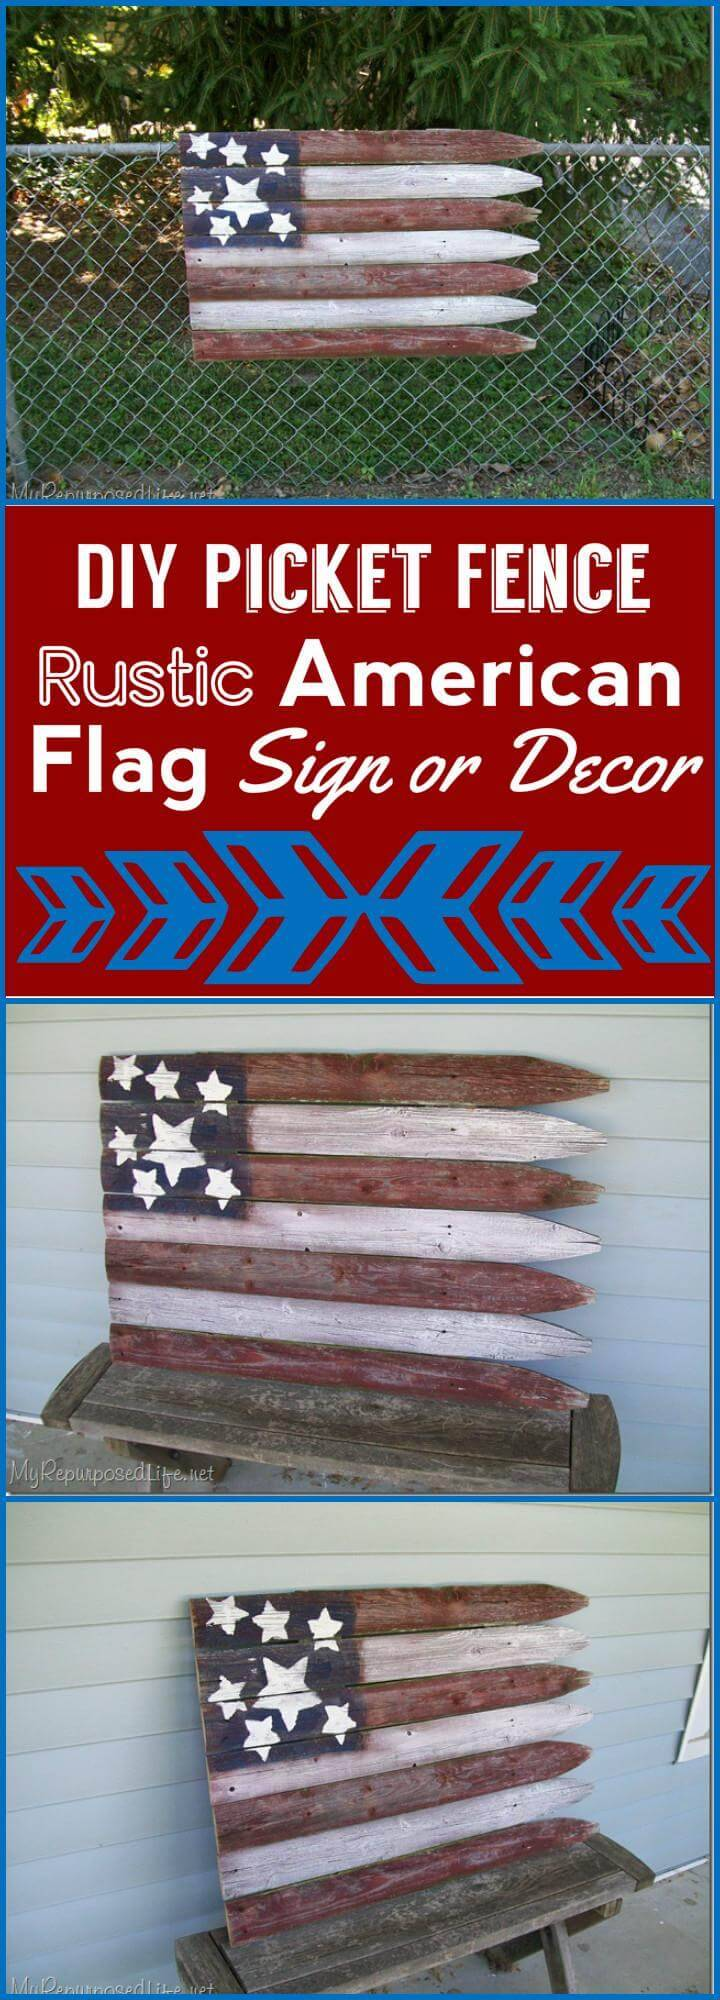 DIY picket fence rustic American flag sign or decor